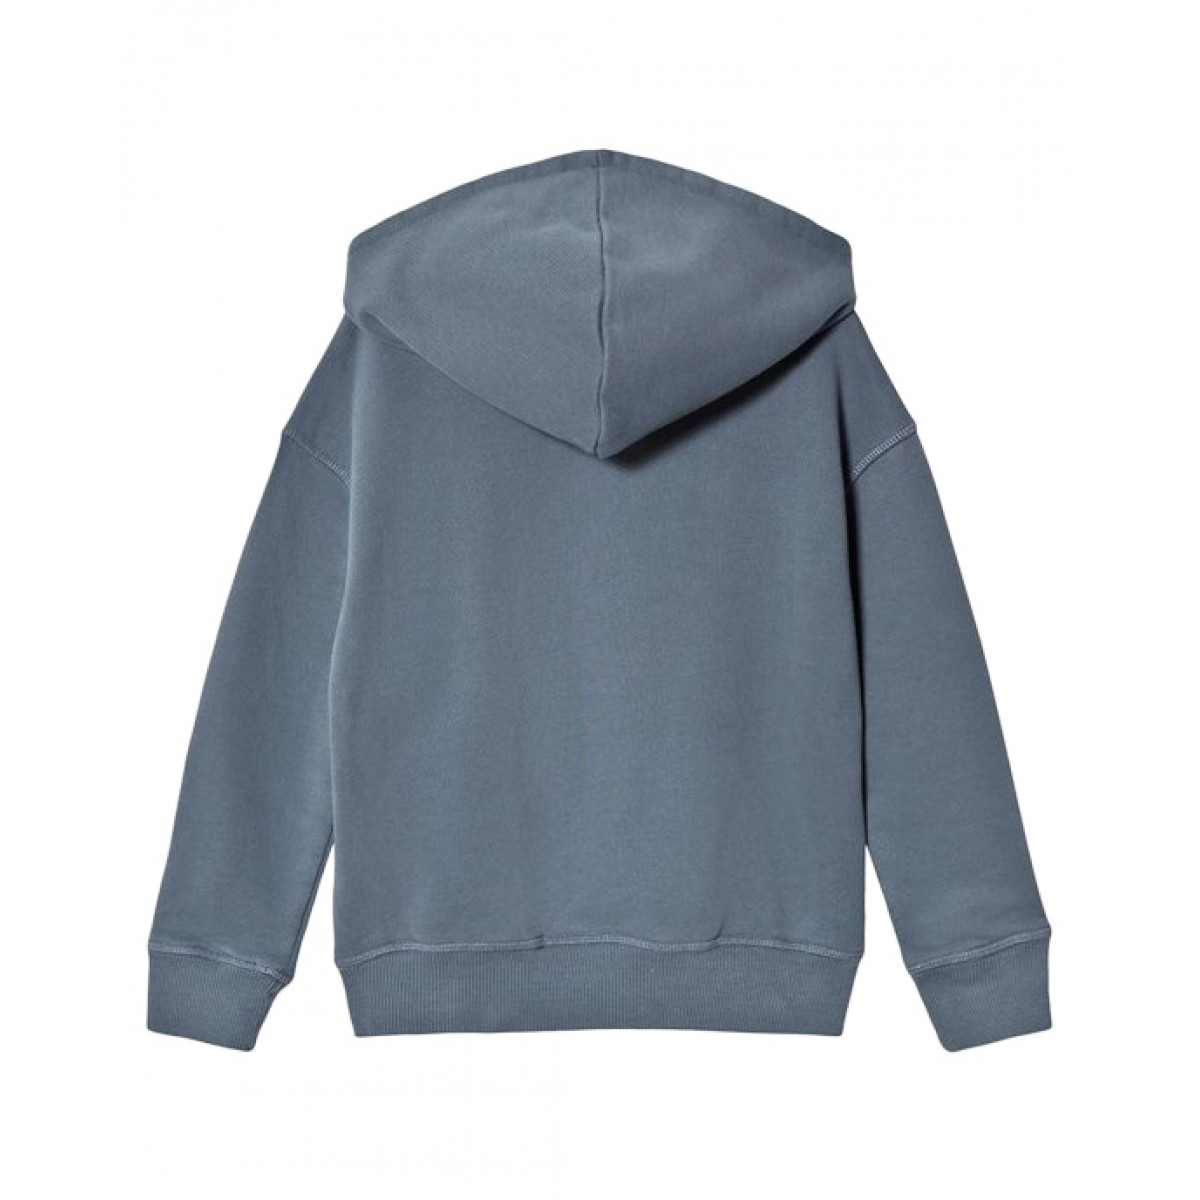 BONPOINT Blue sweatshirt with colorful embroidery